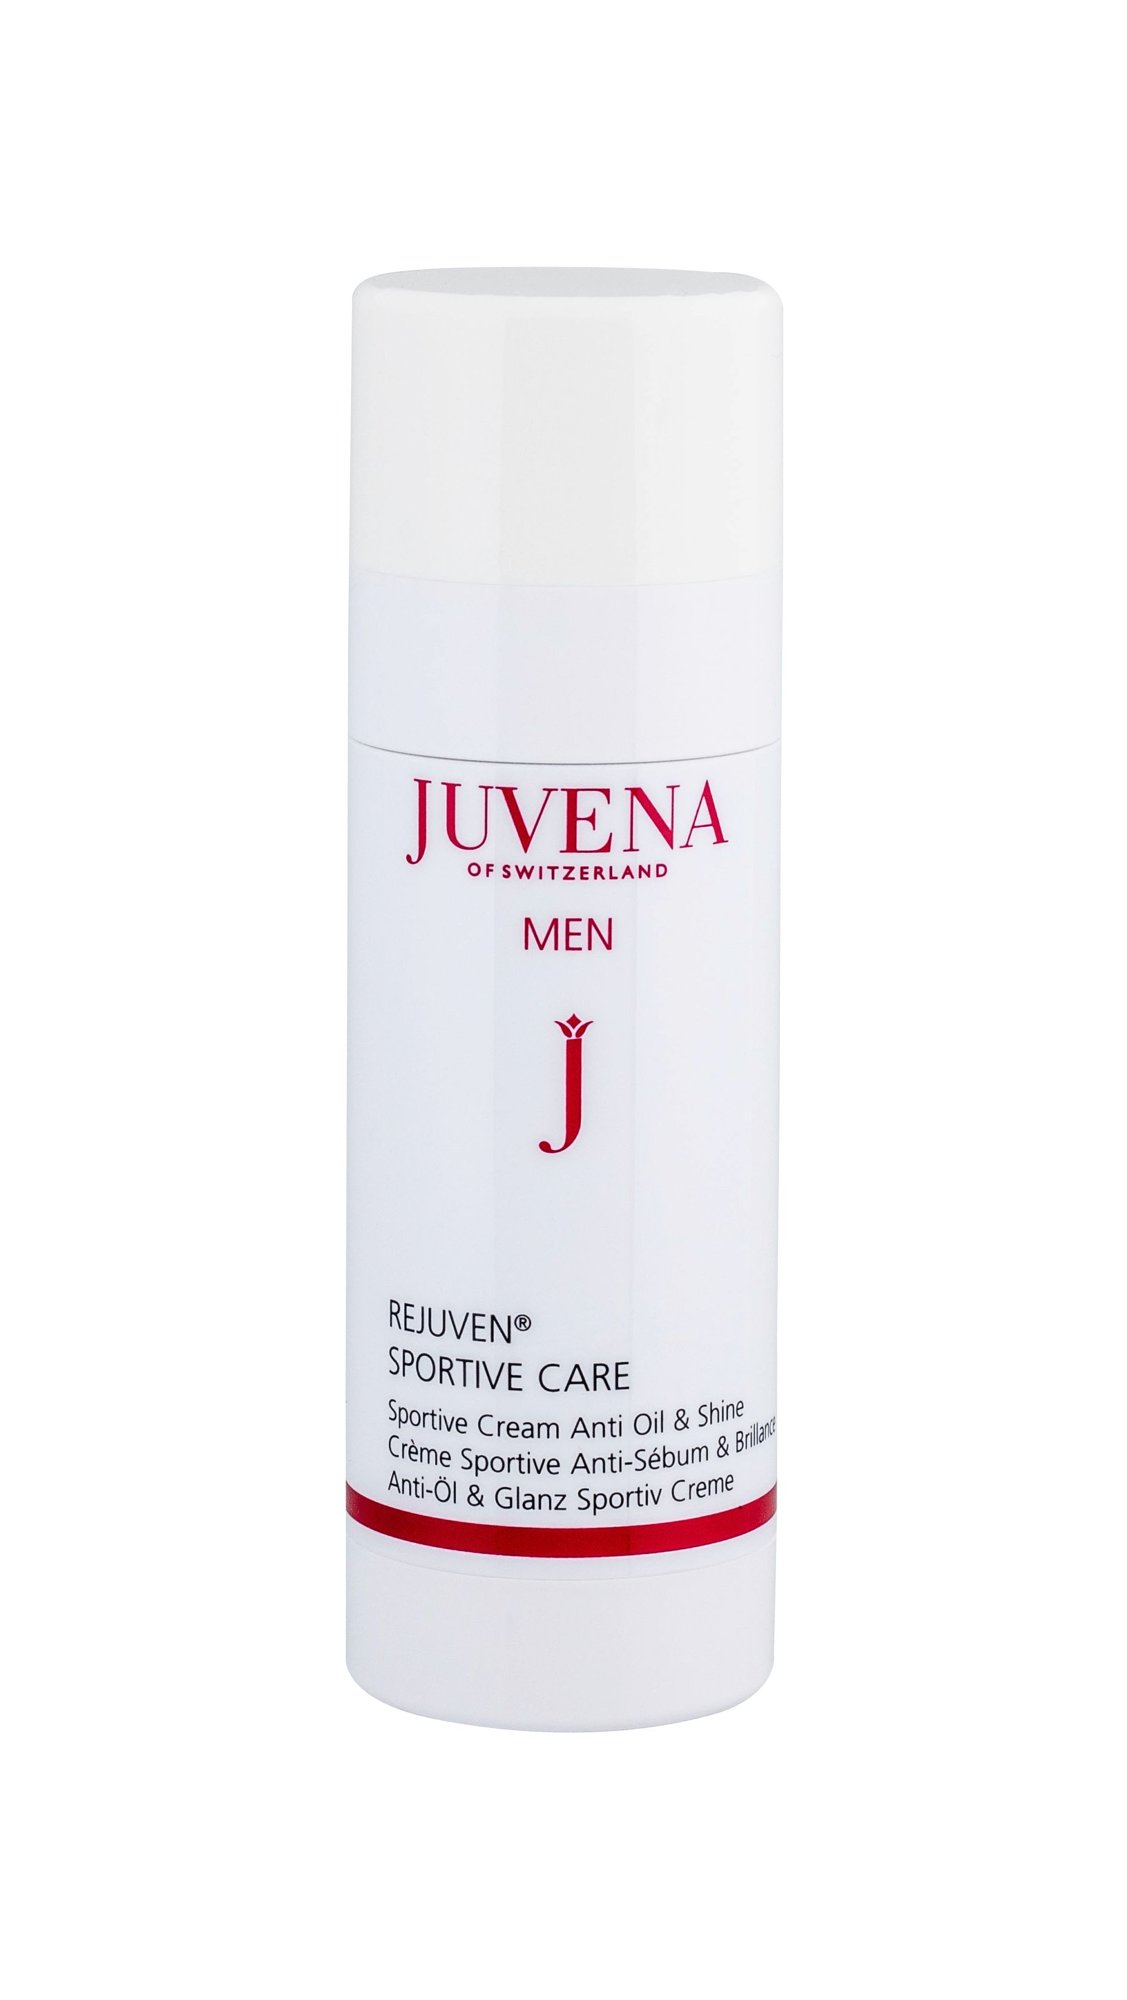 Juvena Rejuven® Men Day Cream 50ml